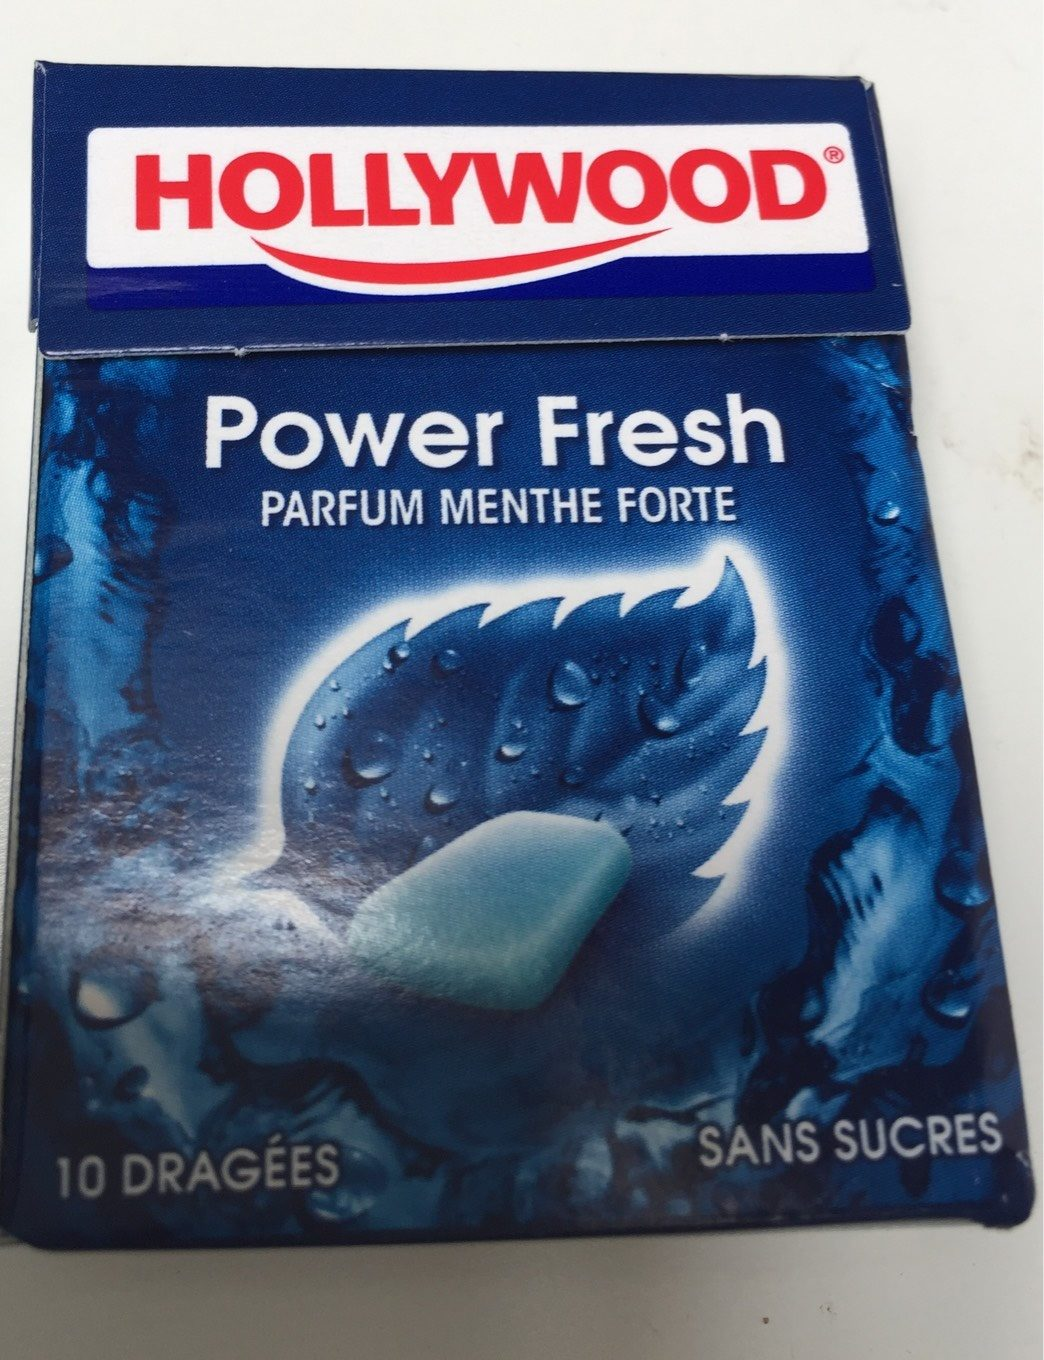 Chewing gum menthe forte s/sucres Hollywood Power Fresh - Produit